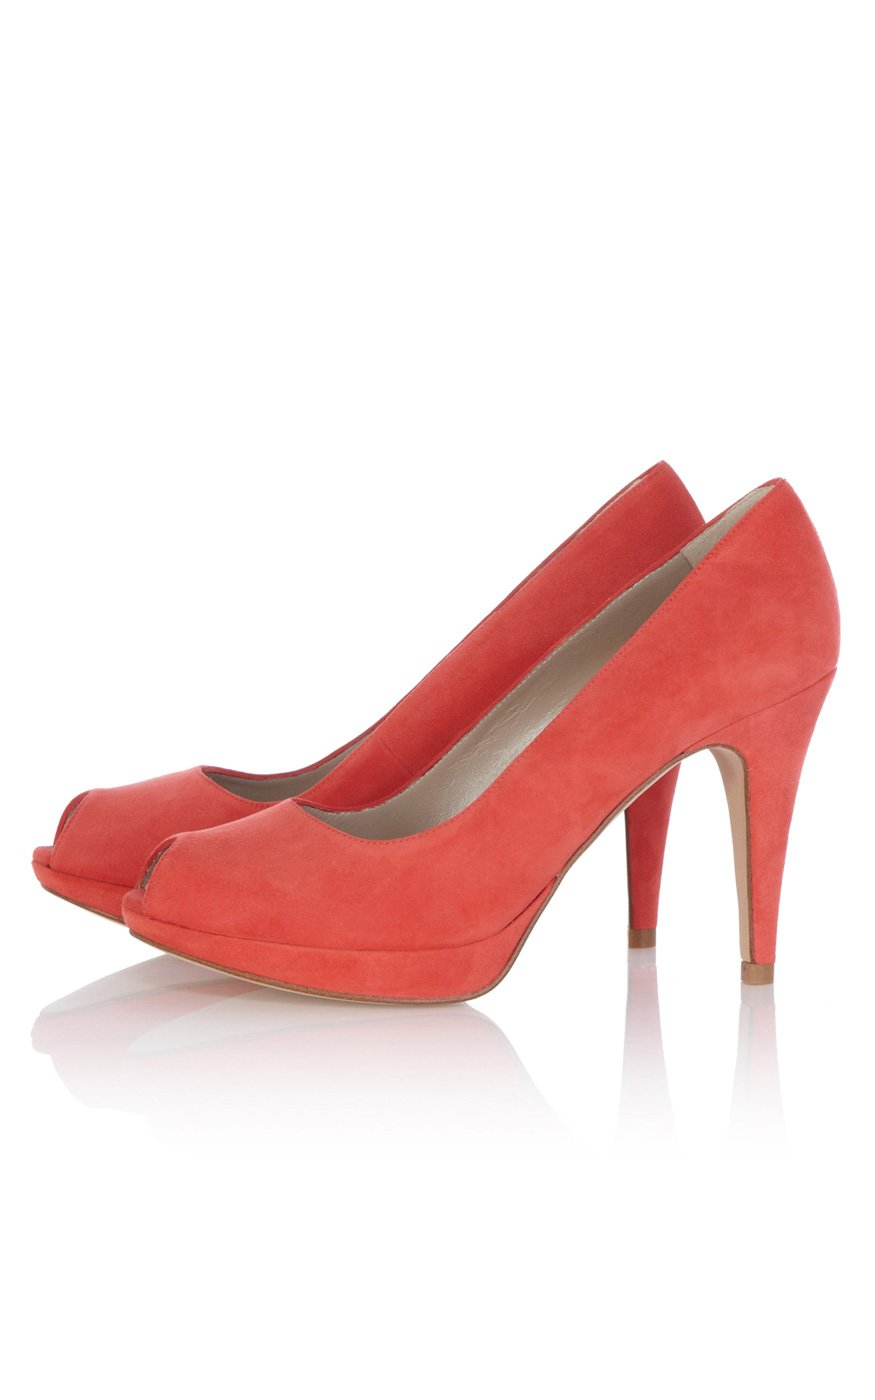 Karen Millen Suede Peep-Toe Pumps new cheap price free shipping websites cheap sale looking for lbimncP